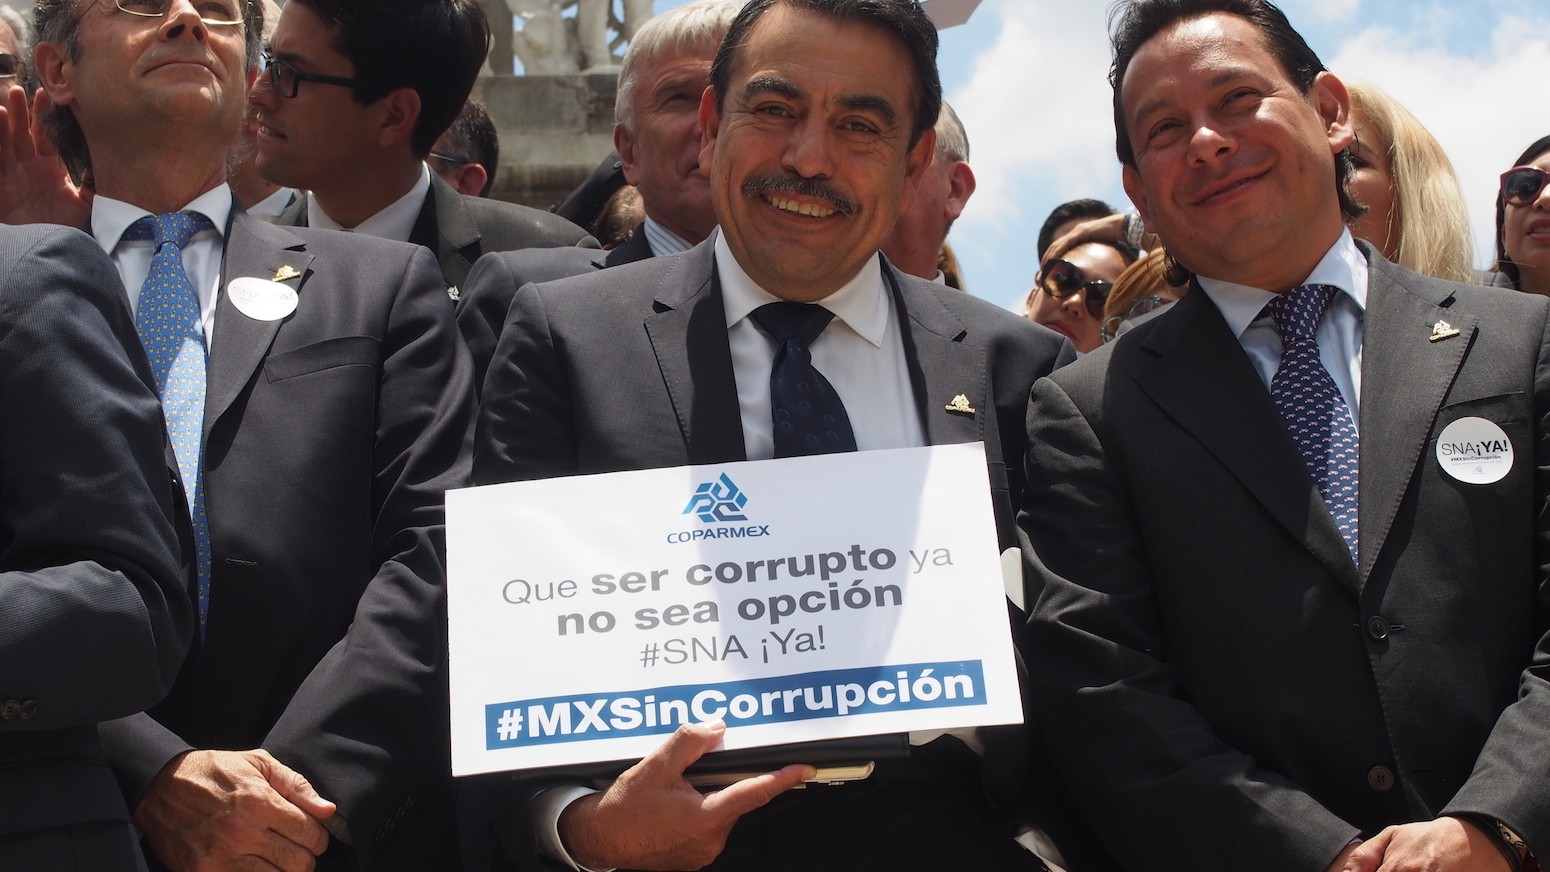 Mexico's business elite speak out against corruption in an extremely polite protest